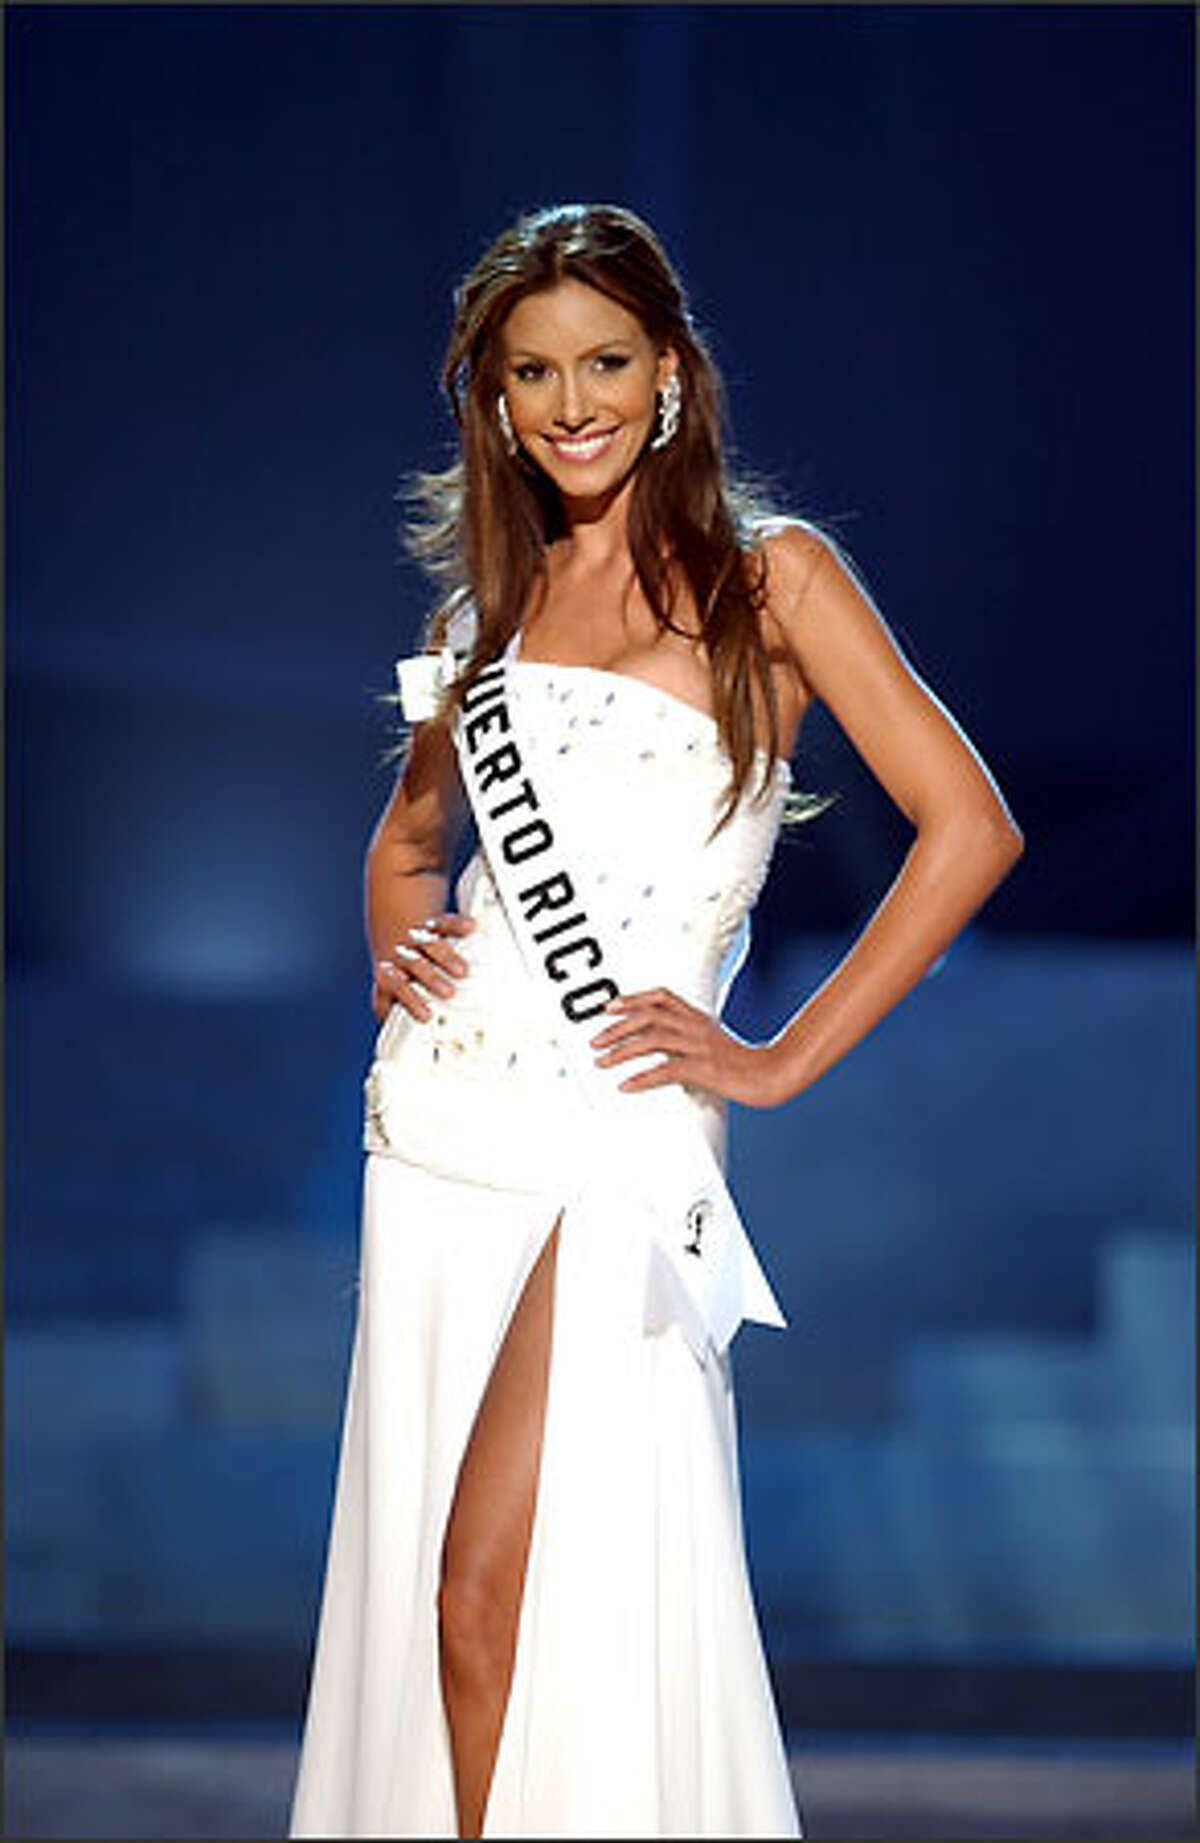 Alba Giselle Reyes Santos, Miss Puerto Rico, competes in an evening gown of her choice during the 2004 Miss Universe Presentation Show at CEMEXPO in Quito, Ecuador on May 27. Each delegate is judged by a preliminary panel of distinguished judges in three categories consisting of individual interviews, swimsuit competition and evening gown competition. The scores will be tallied and the top 15 delegates will be announced during the NBC broadcast of the 53rd annual Miss Universe competition from Quito on June 1 at 9 p.m. (/delayed PT).